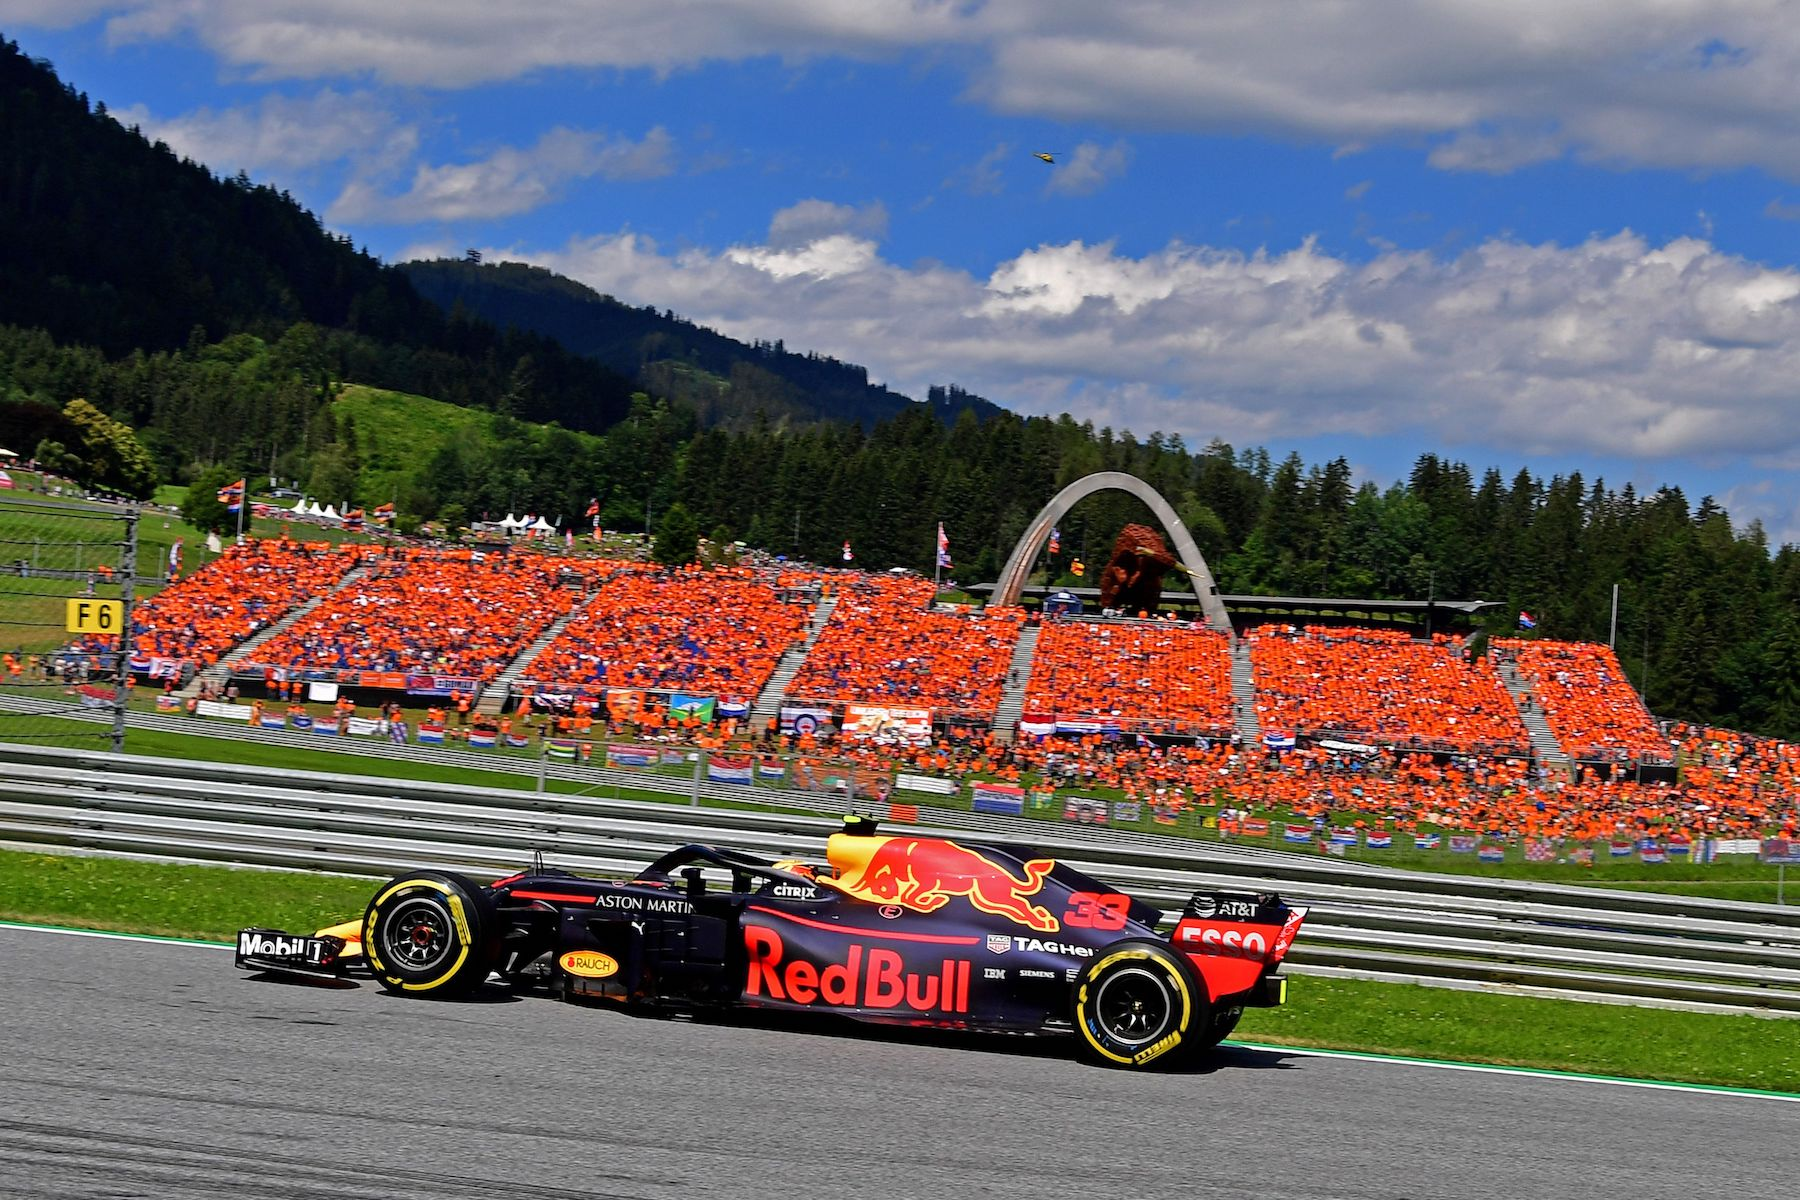 2018 Max Verstappen | Red Bull RB14 | 2018 Austrian GP winner